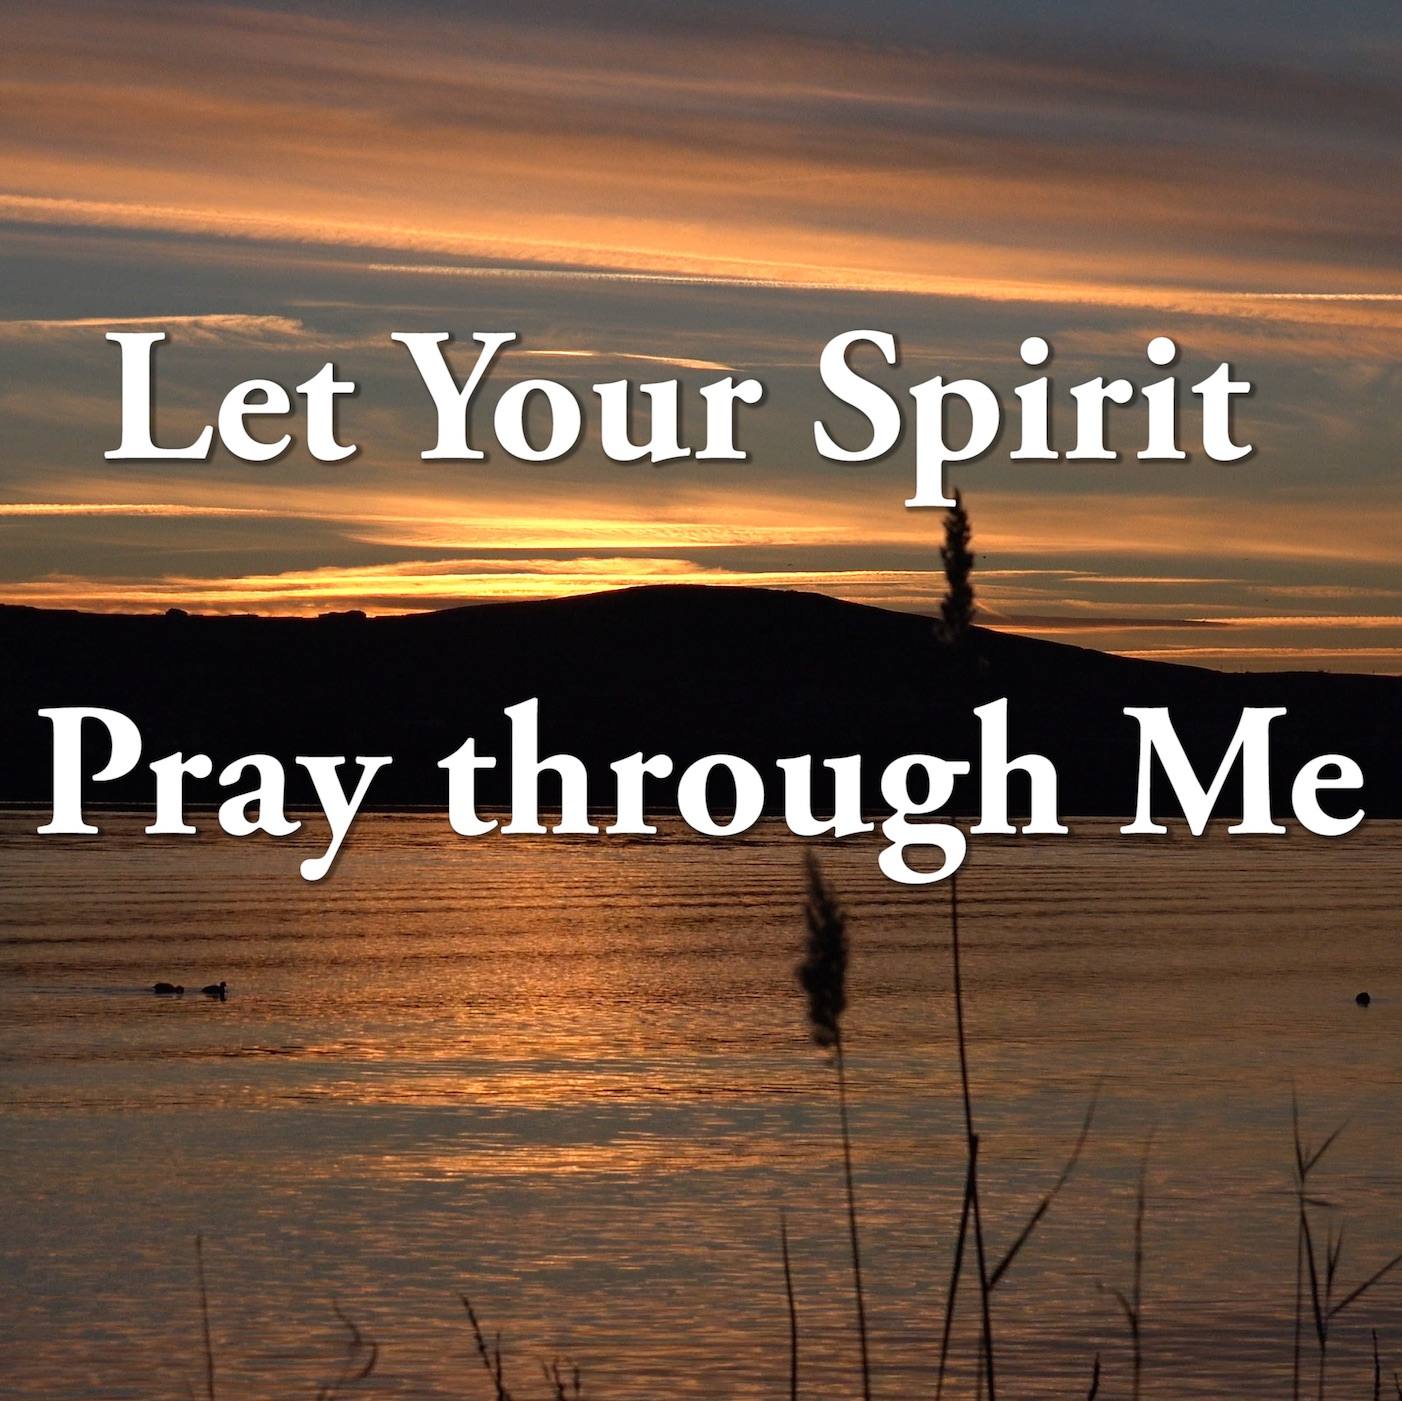 Abba Father Let Your Spirit Pray through Me